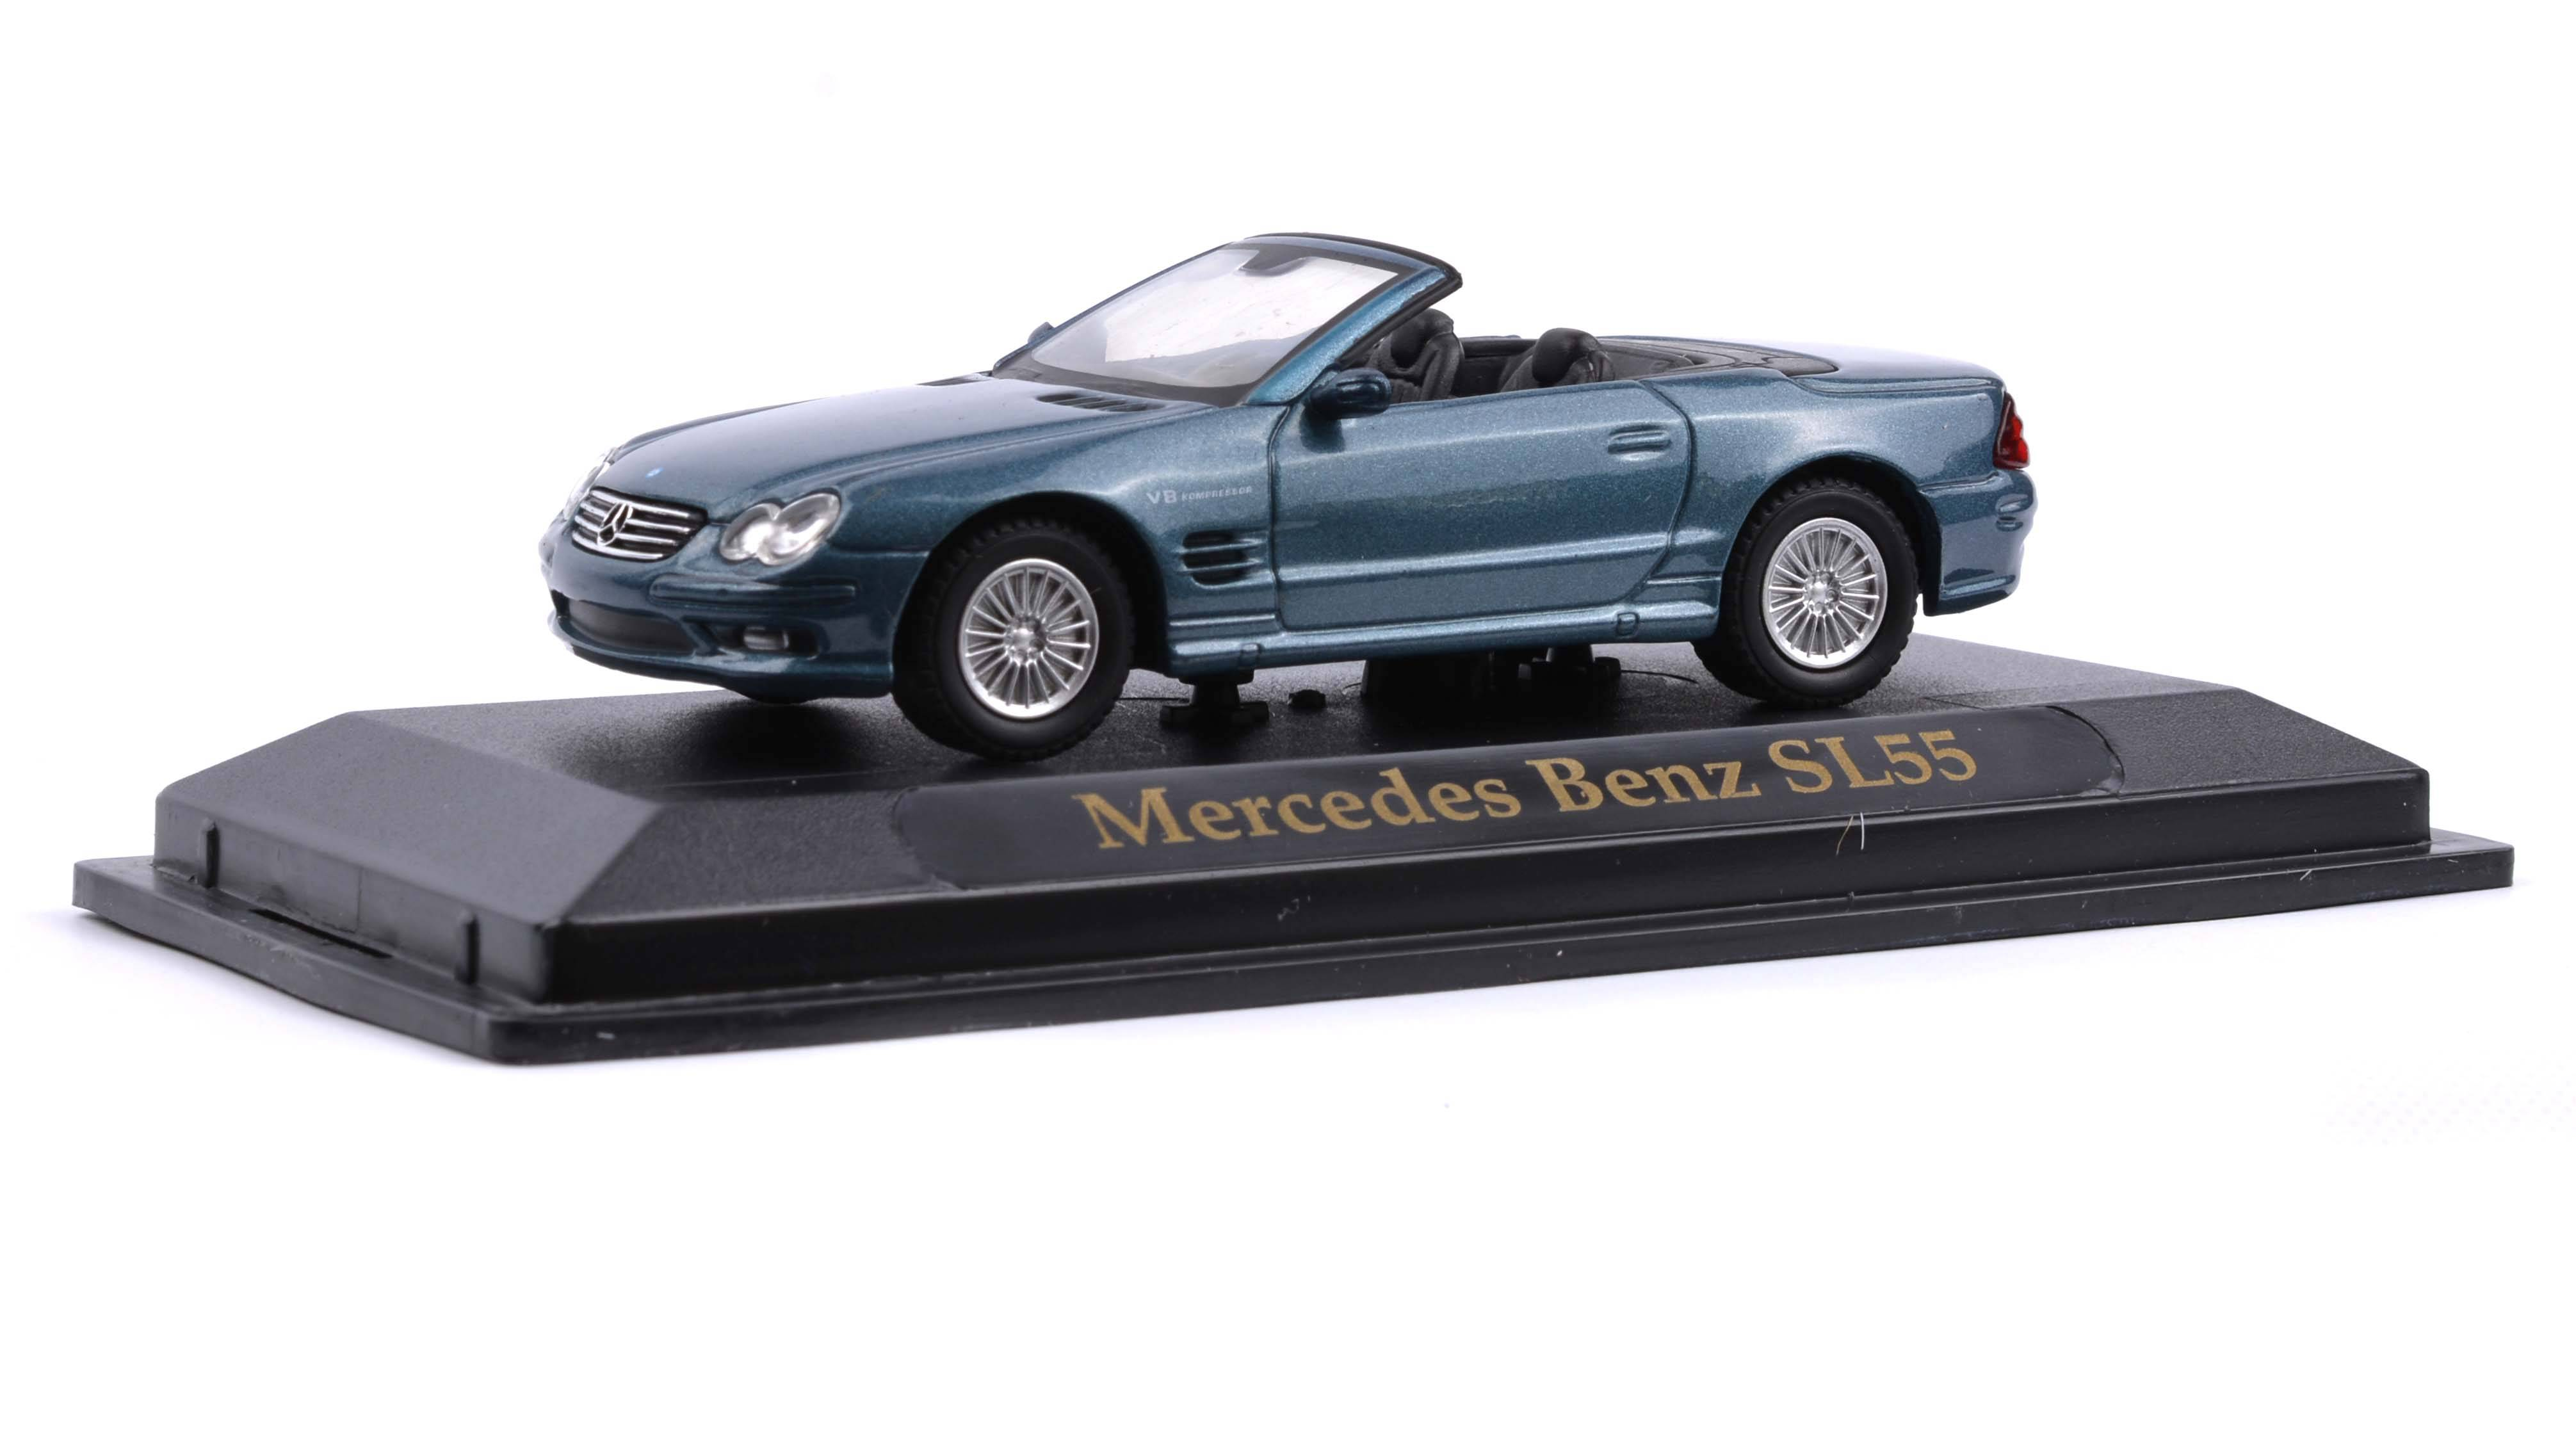 Mercedes Benz SL55 časopis s modelem - Road Signature Collection